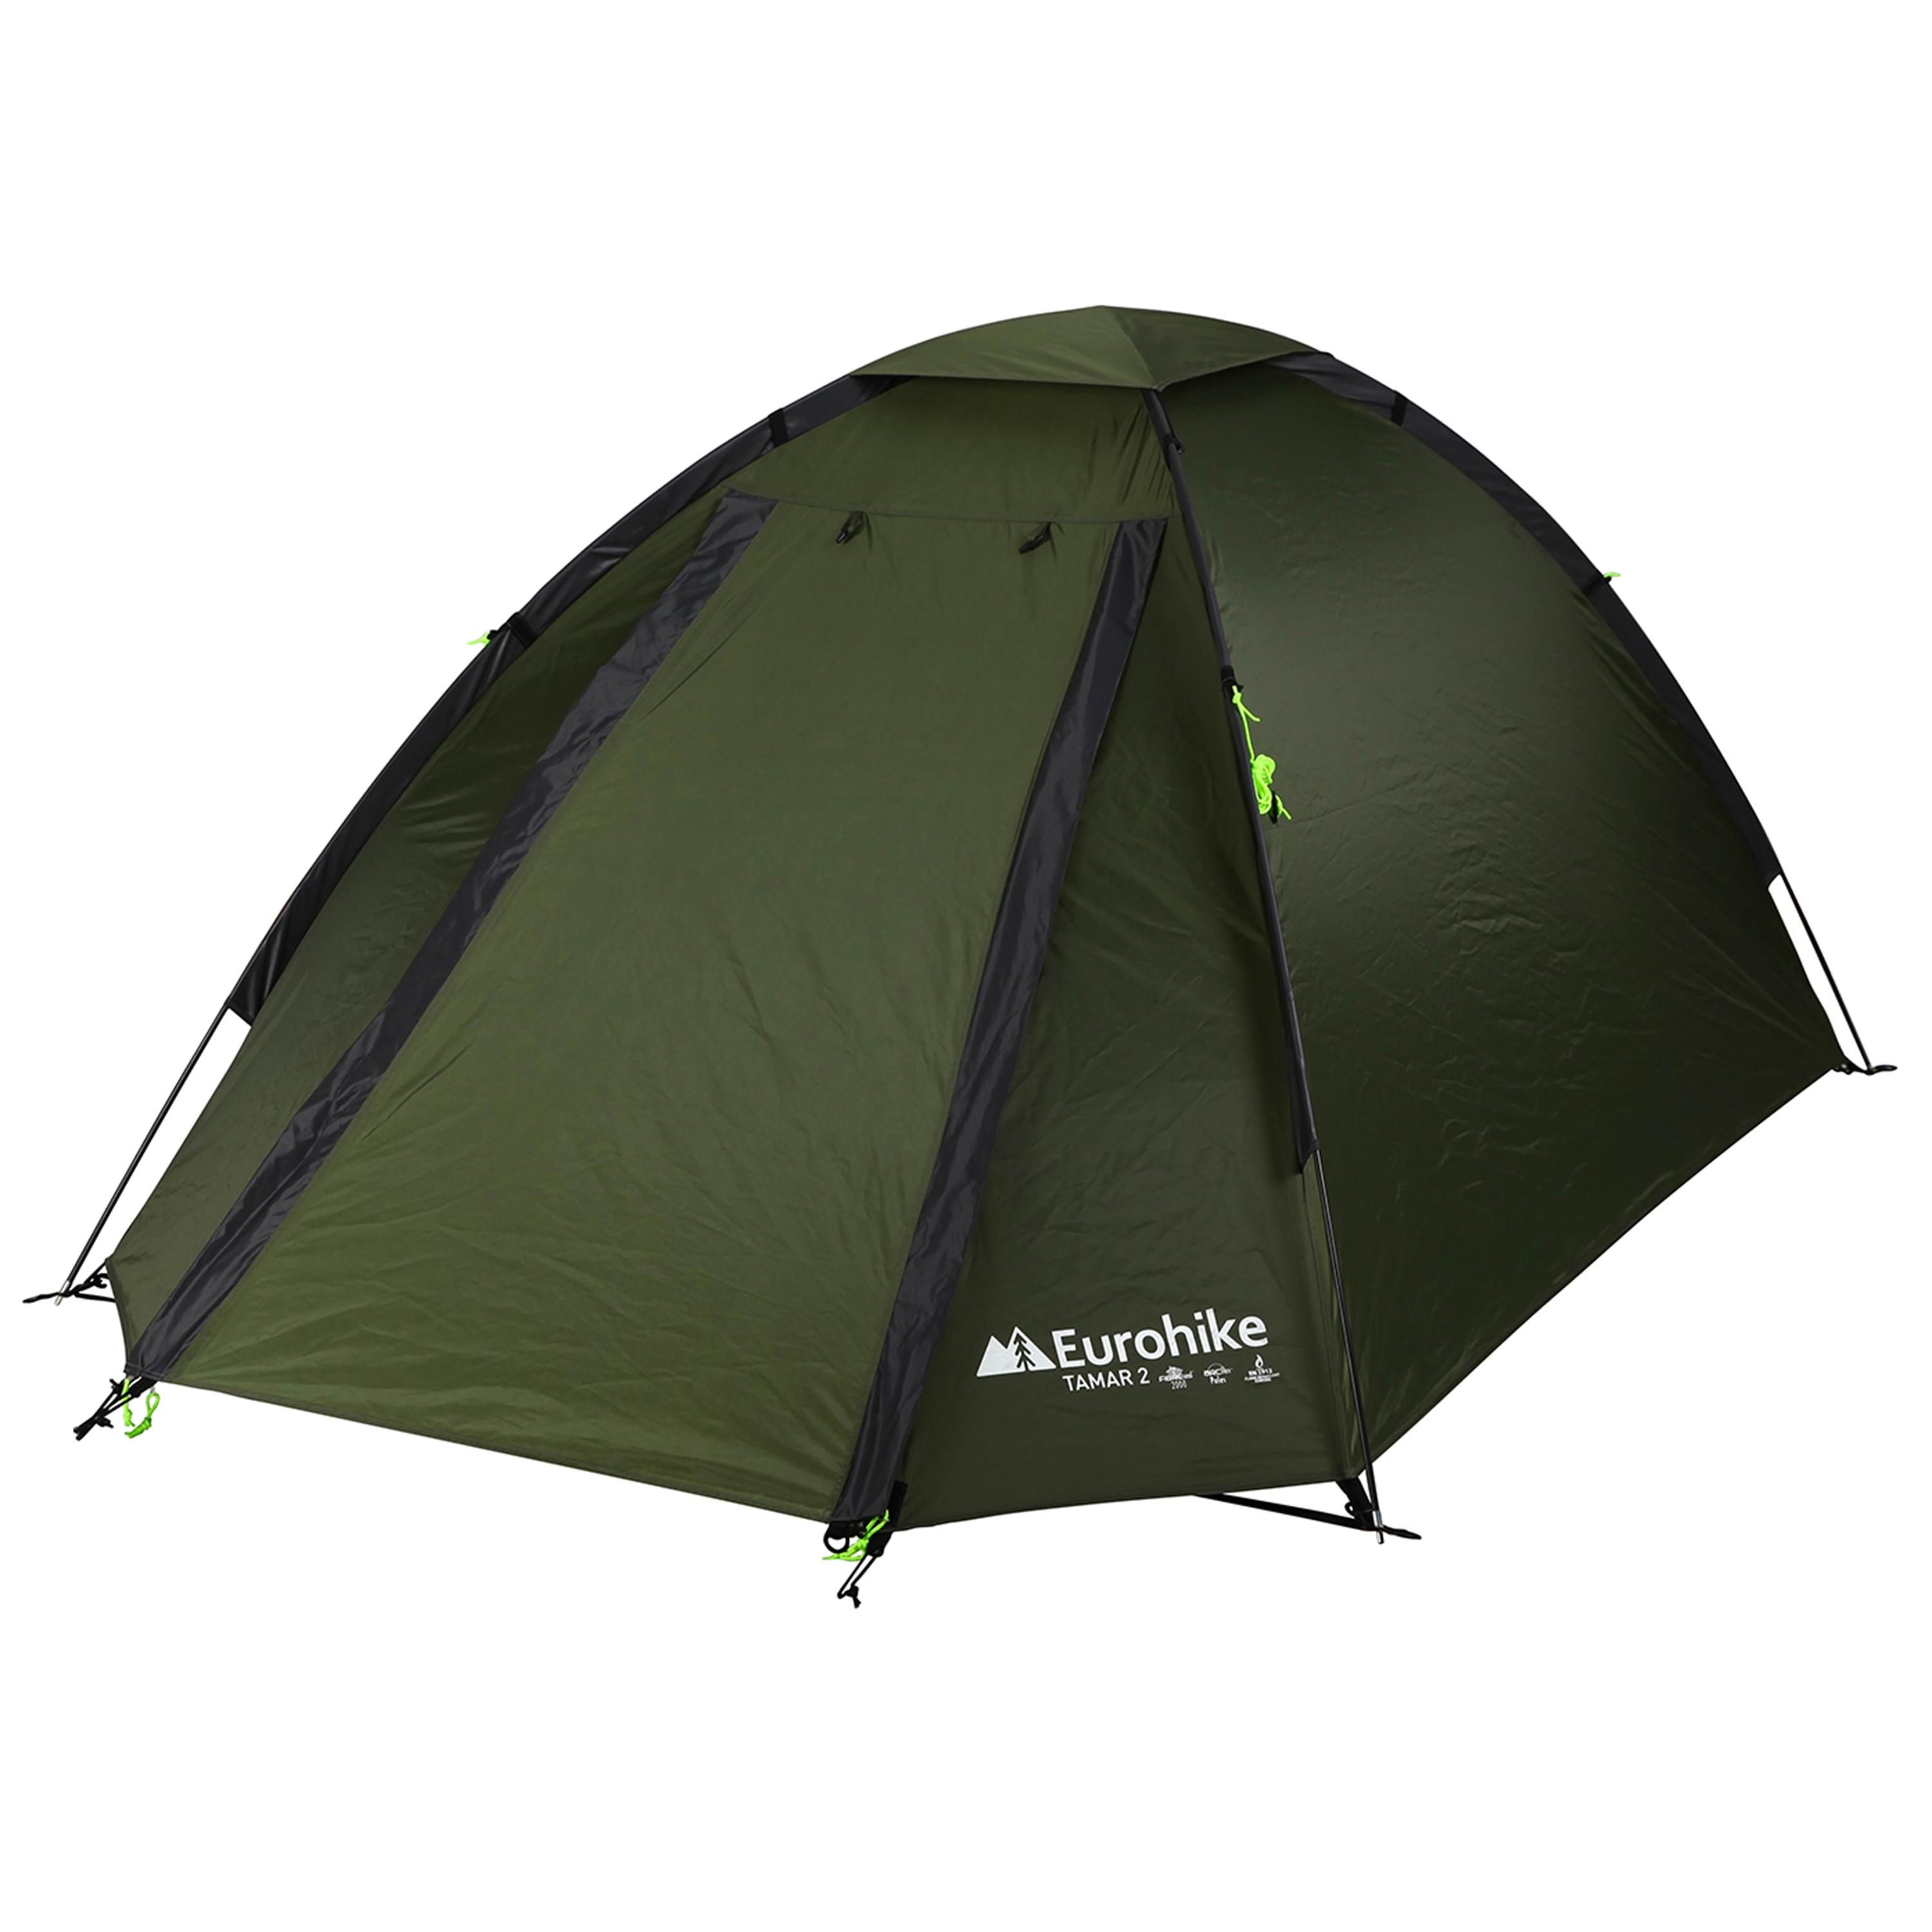 Easy to pitch and super-light the Tamar is a surprisingly spacious 2 man tent perfect for backpacking adventures where weight and size matters.  sc 1 st  Pinterest & pop-up tents - Googleu0027da Ara | ID402 2016 Projeler için Örnekler ...